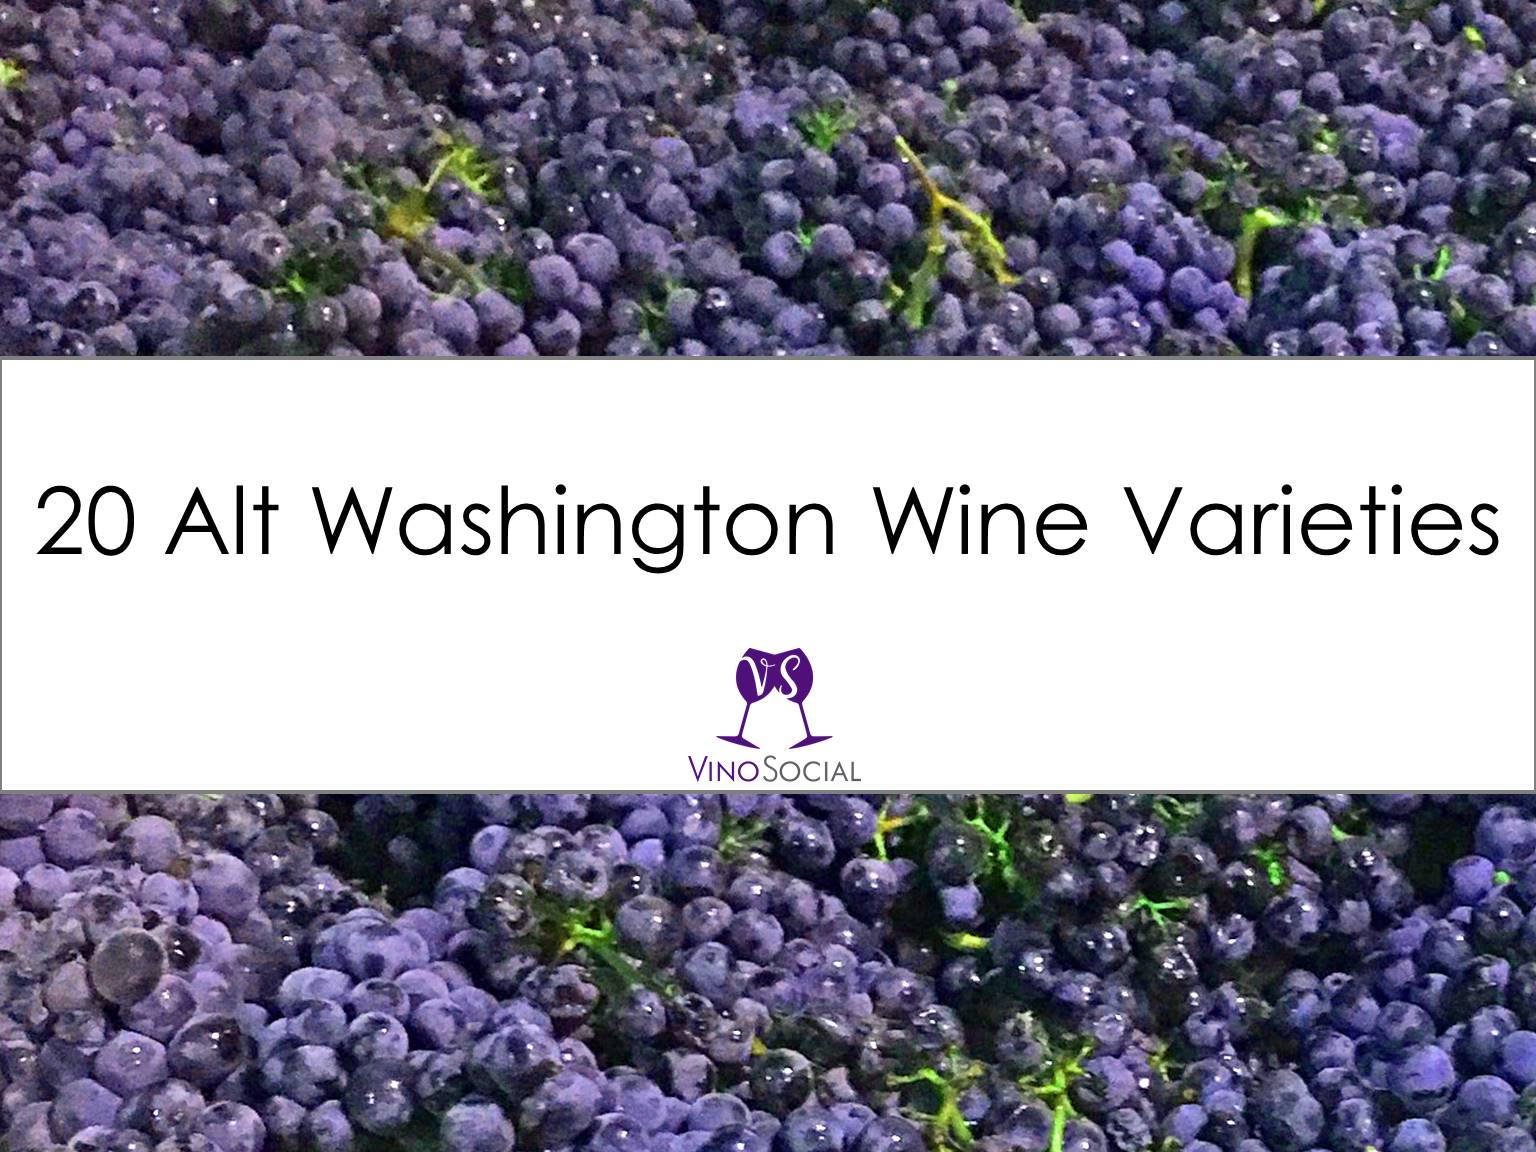 20 Fun Red Washington Wine Varieties You Need to Try